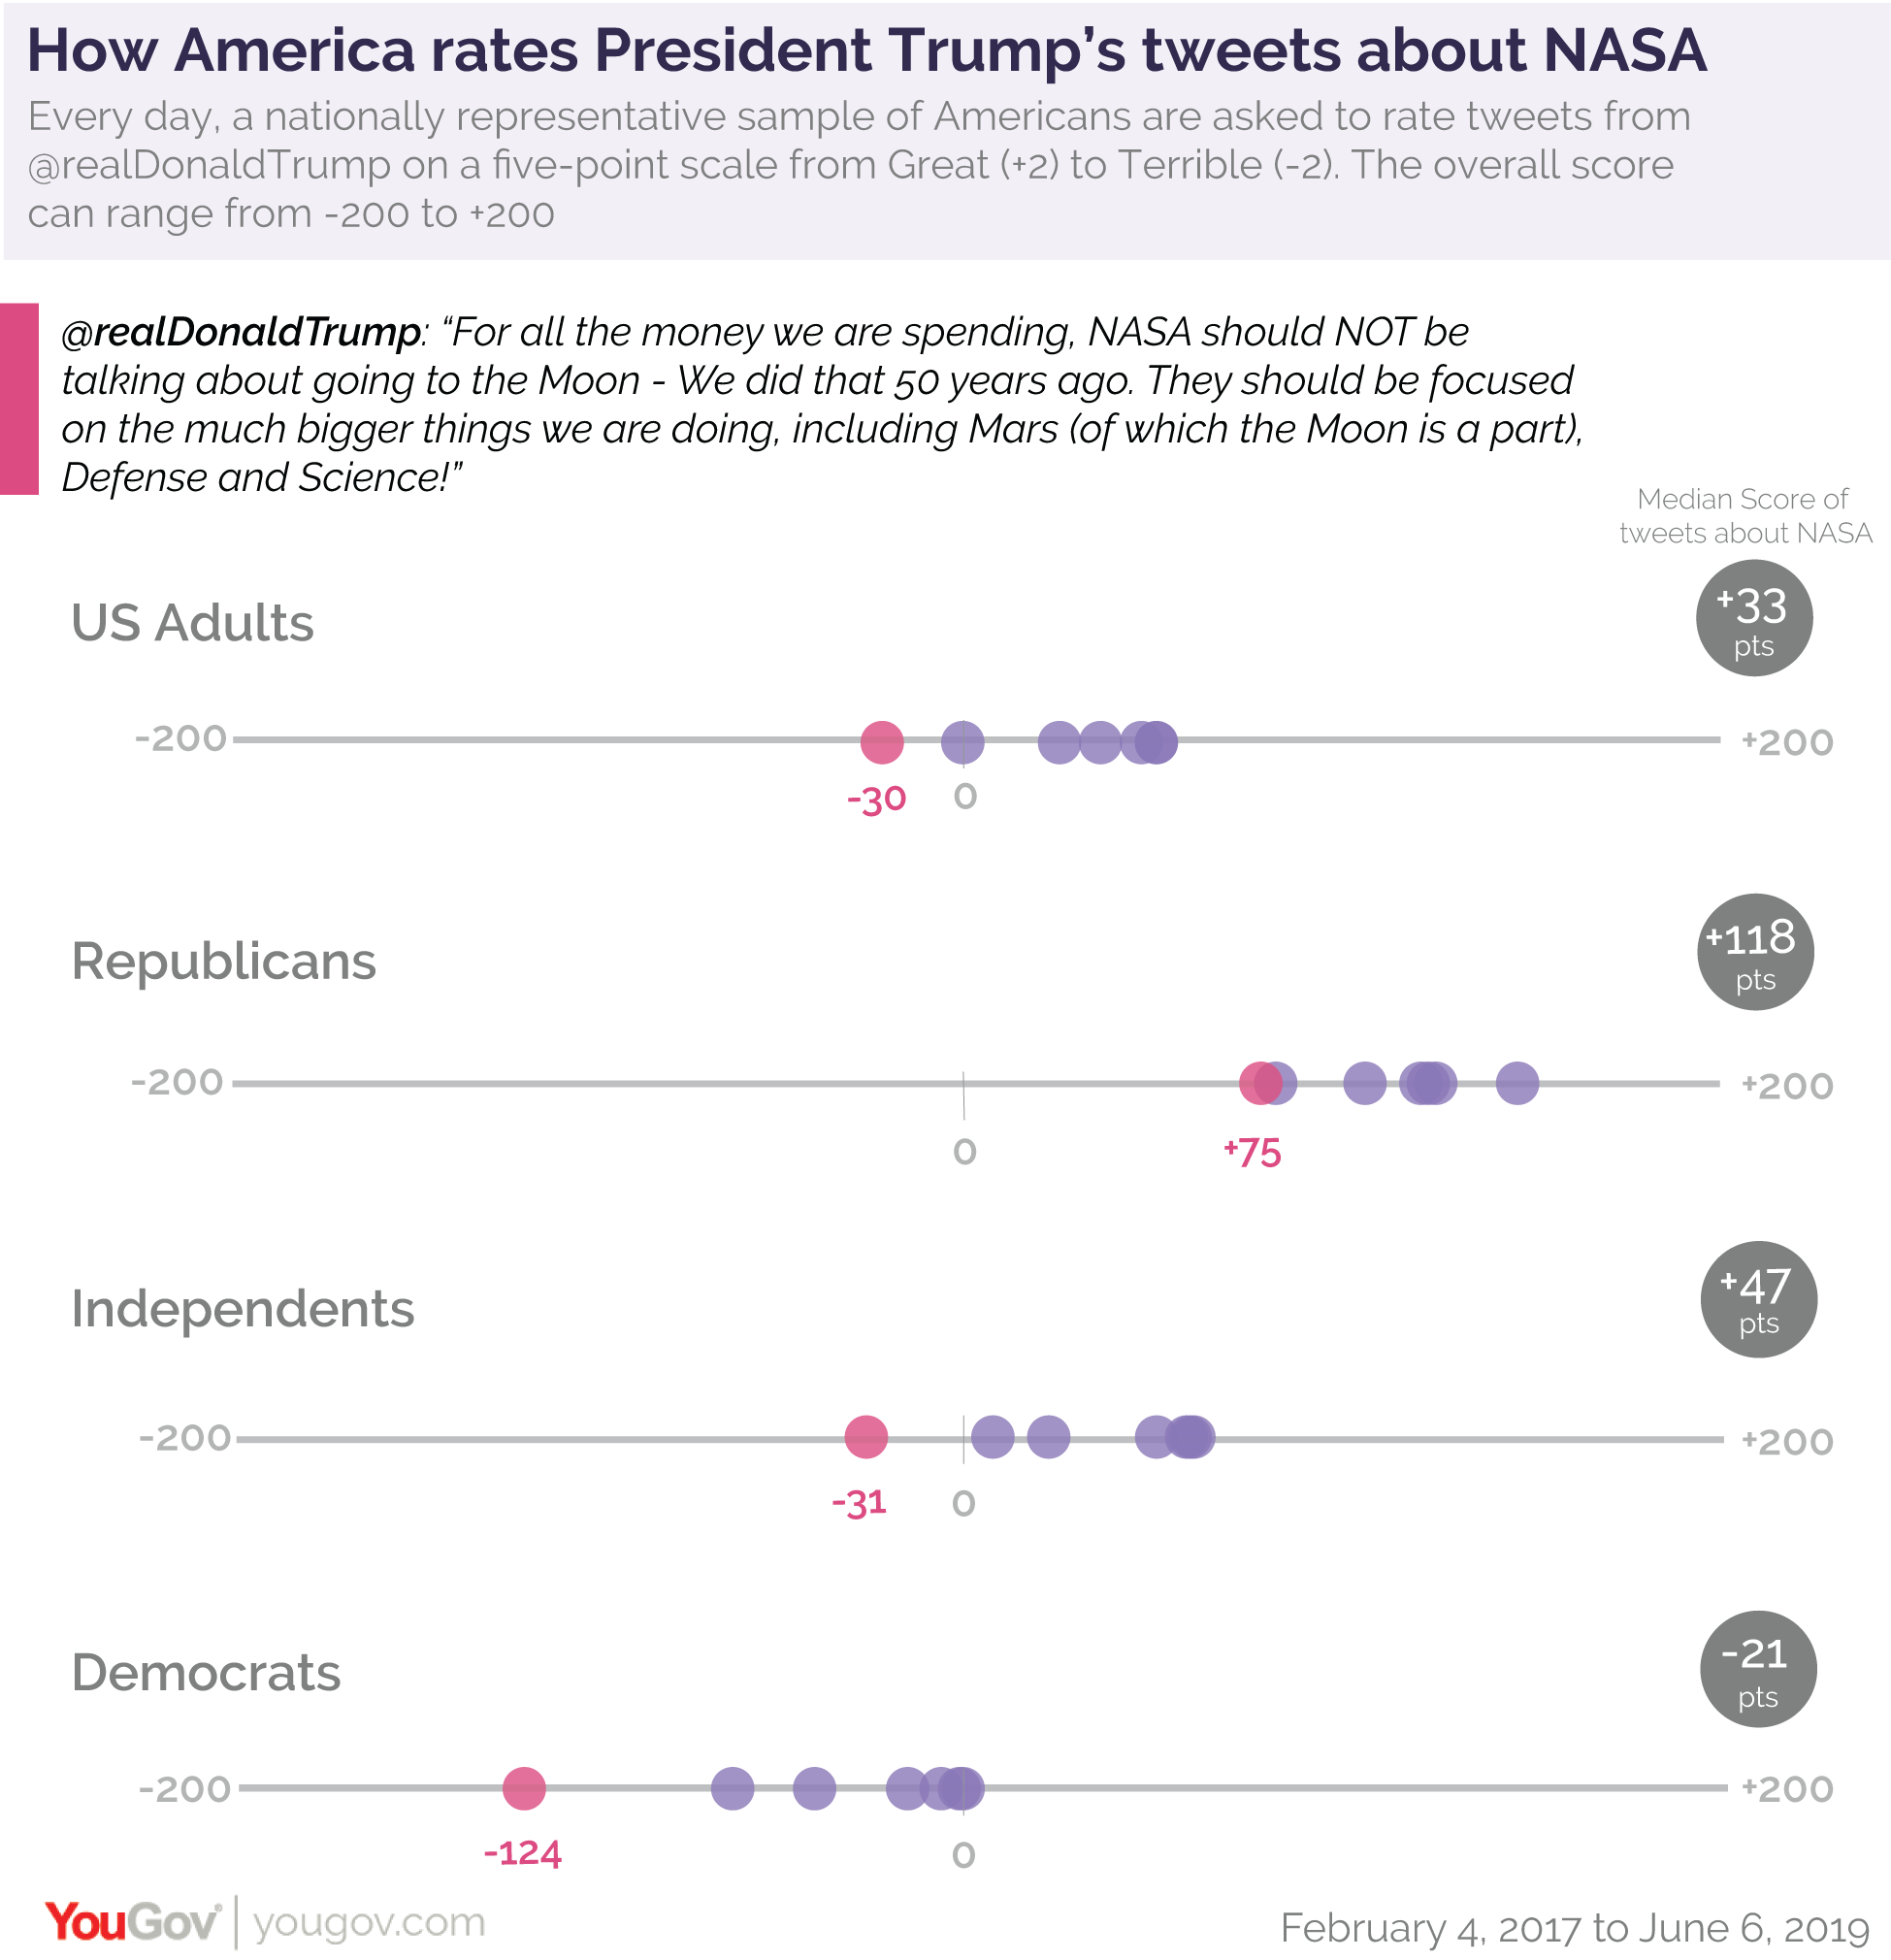 How America rates President Donald Trump's tweets about NASA